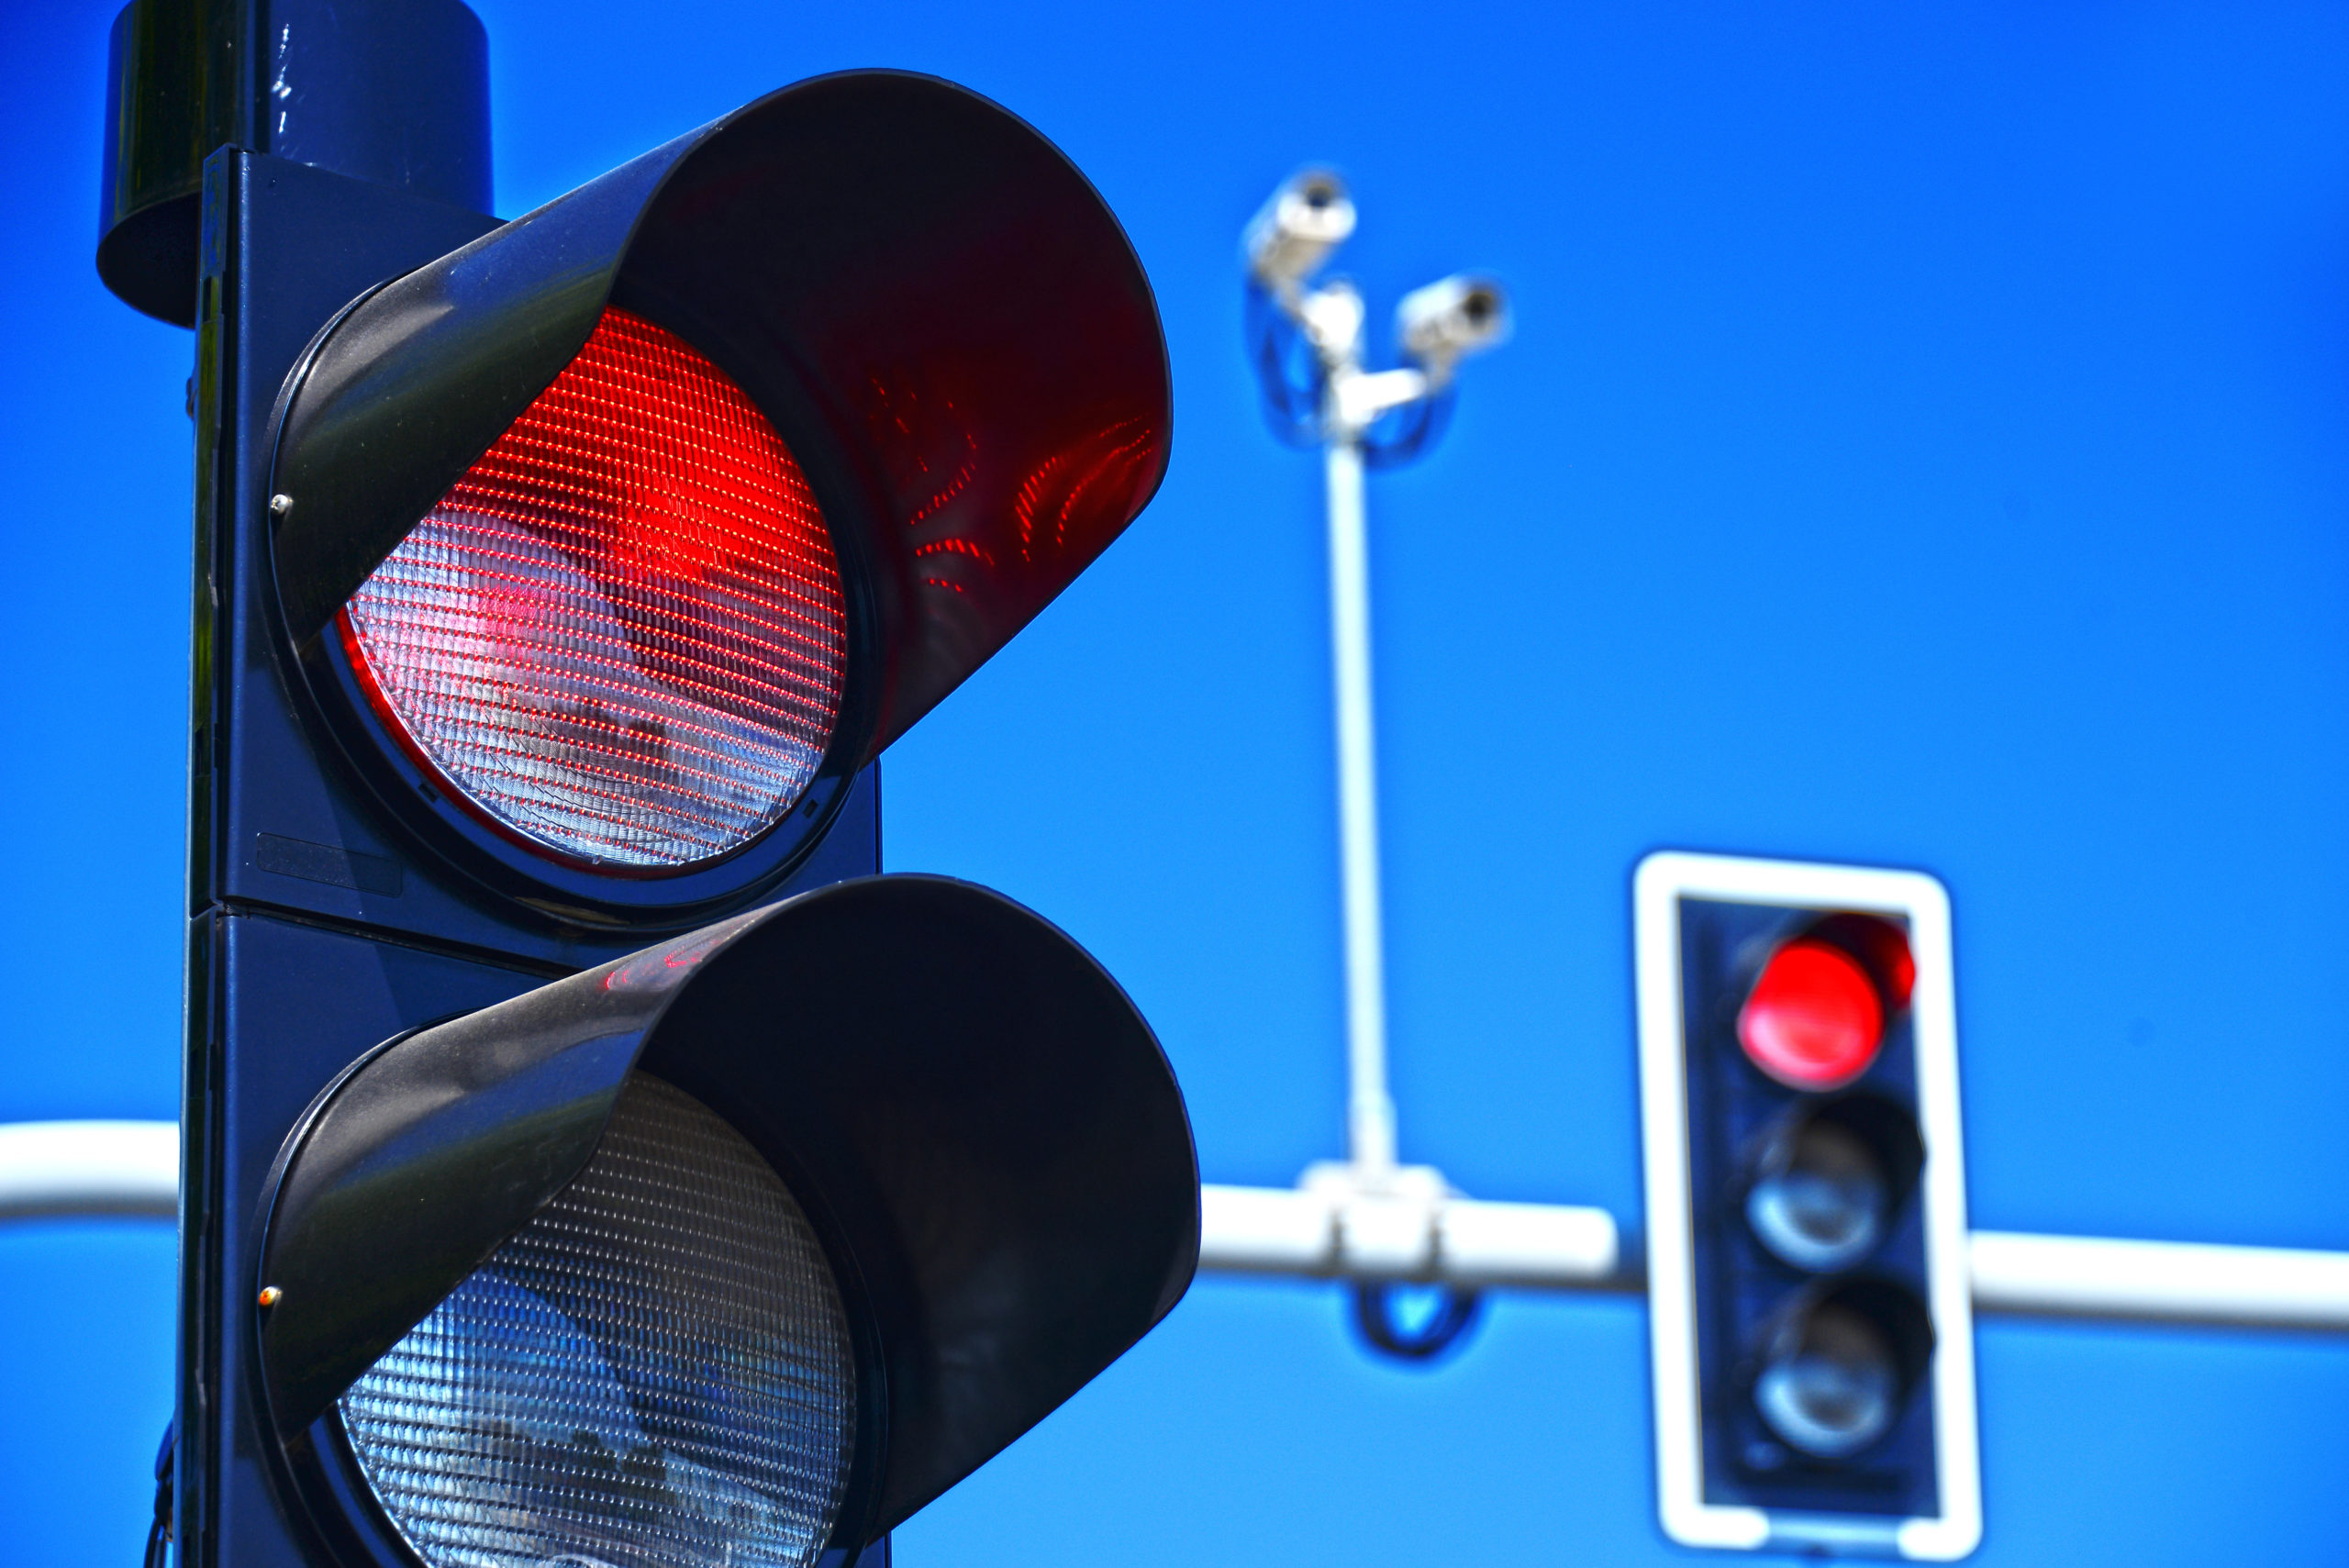 What Can Happen When a Driver Runs a Red Light?